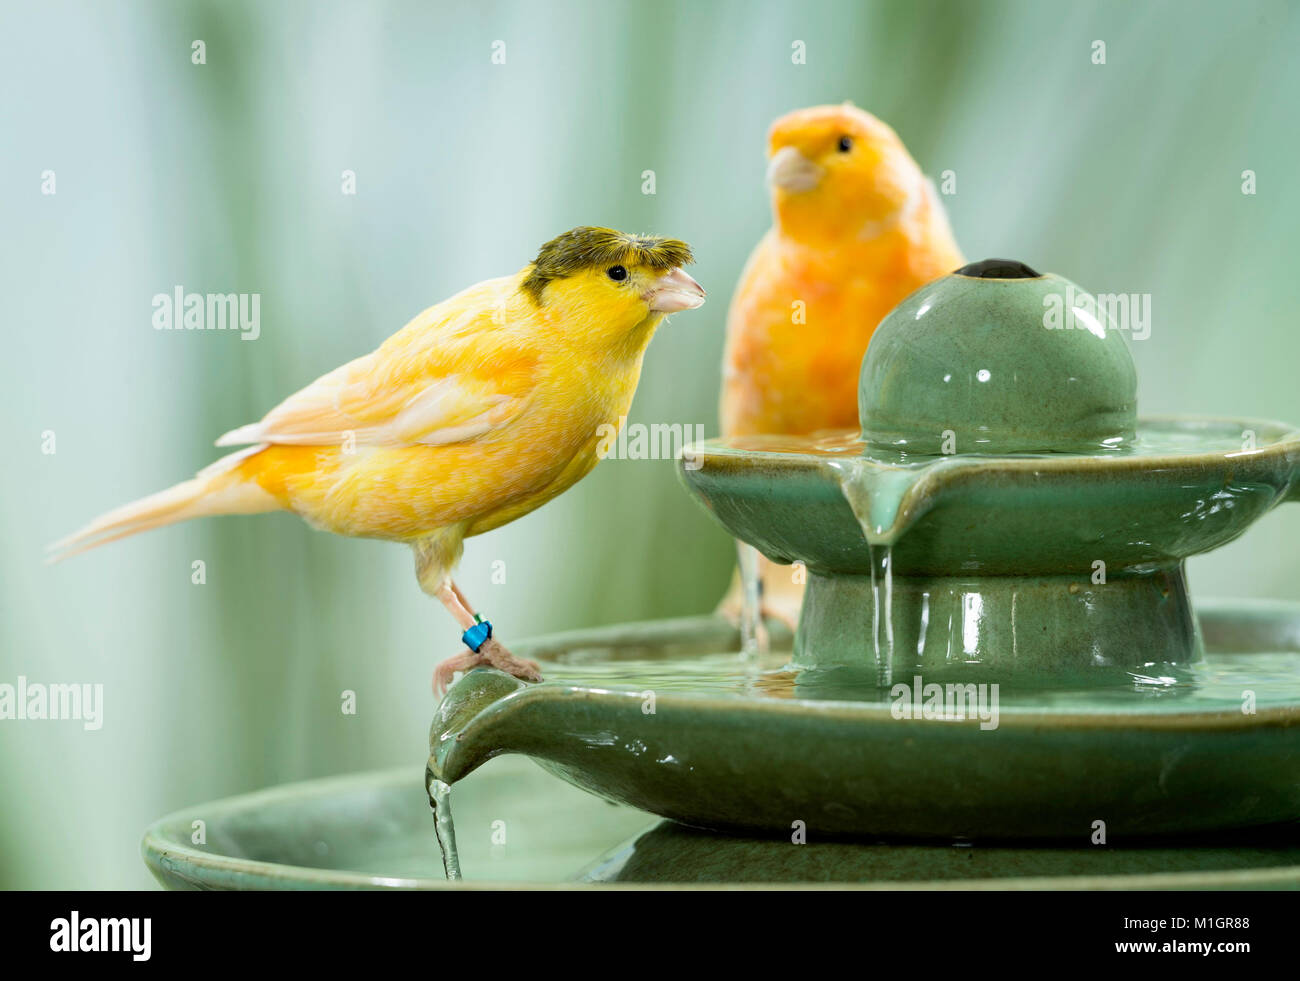 Domestic Canary. Orange and crested bird on indoor fountain. Germany - Stock Image